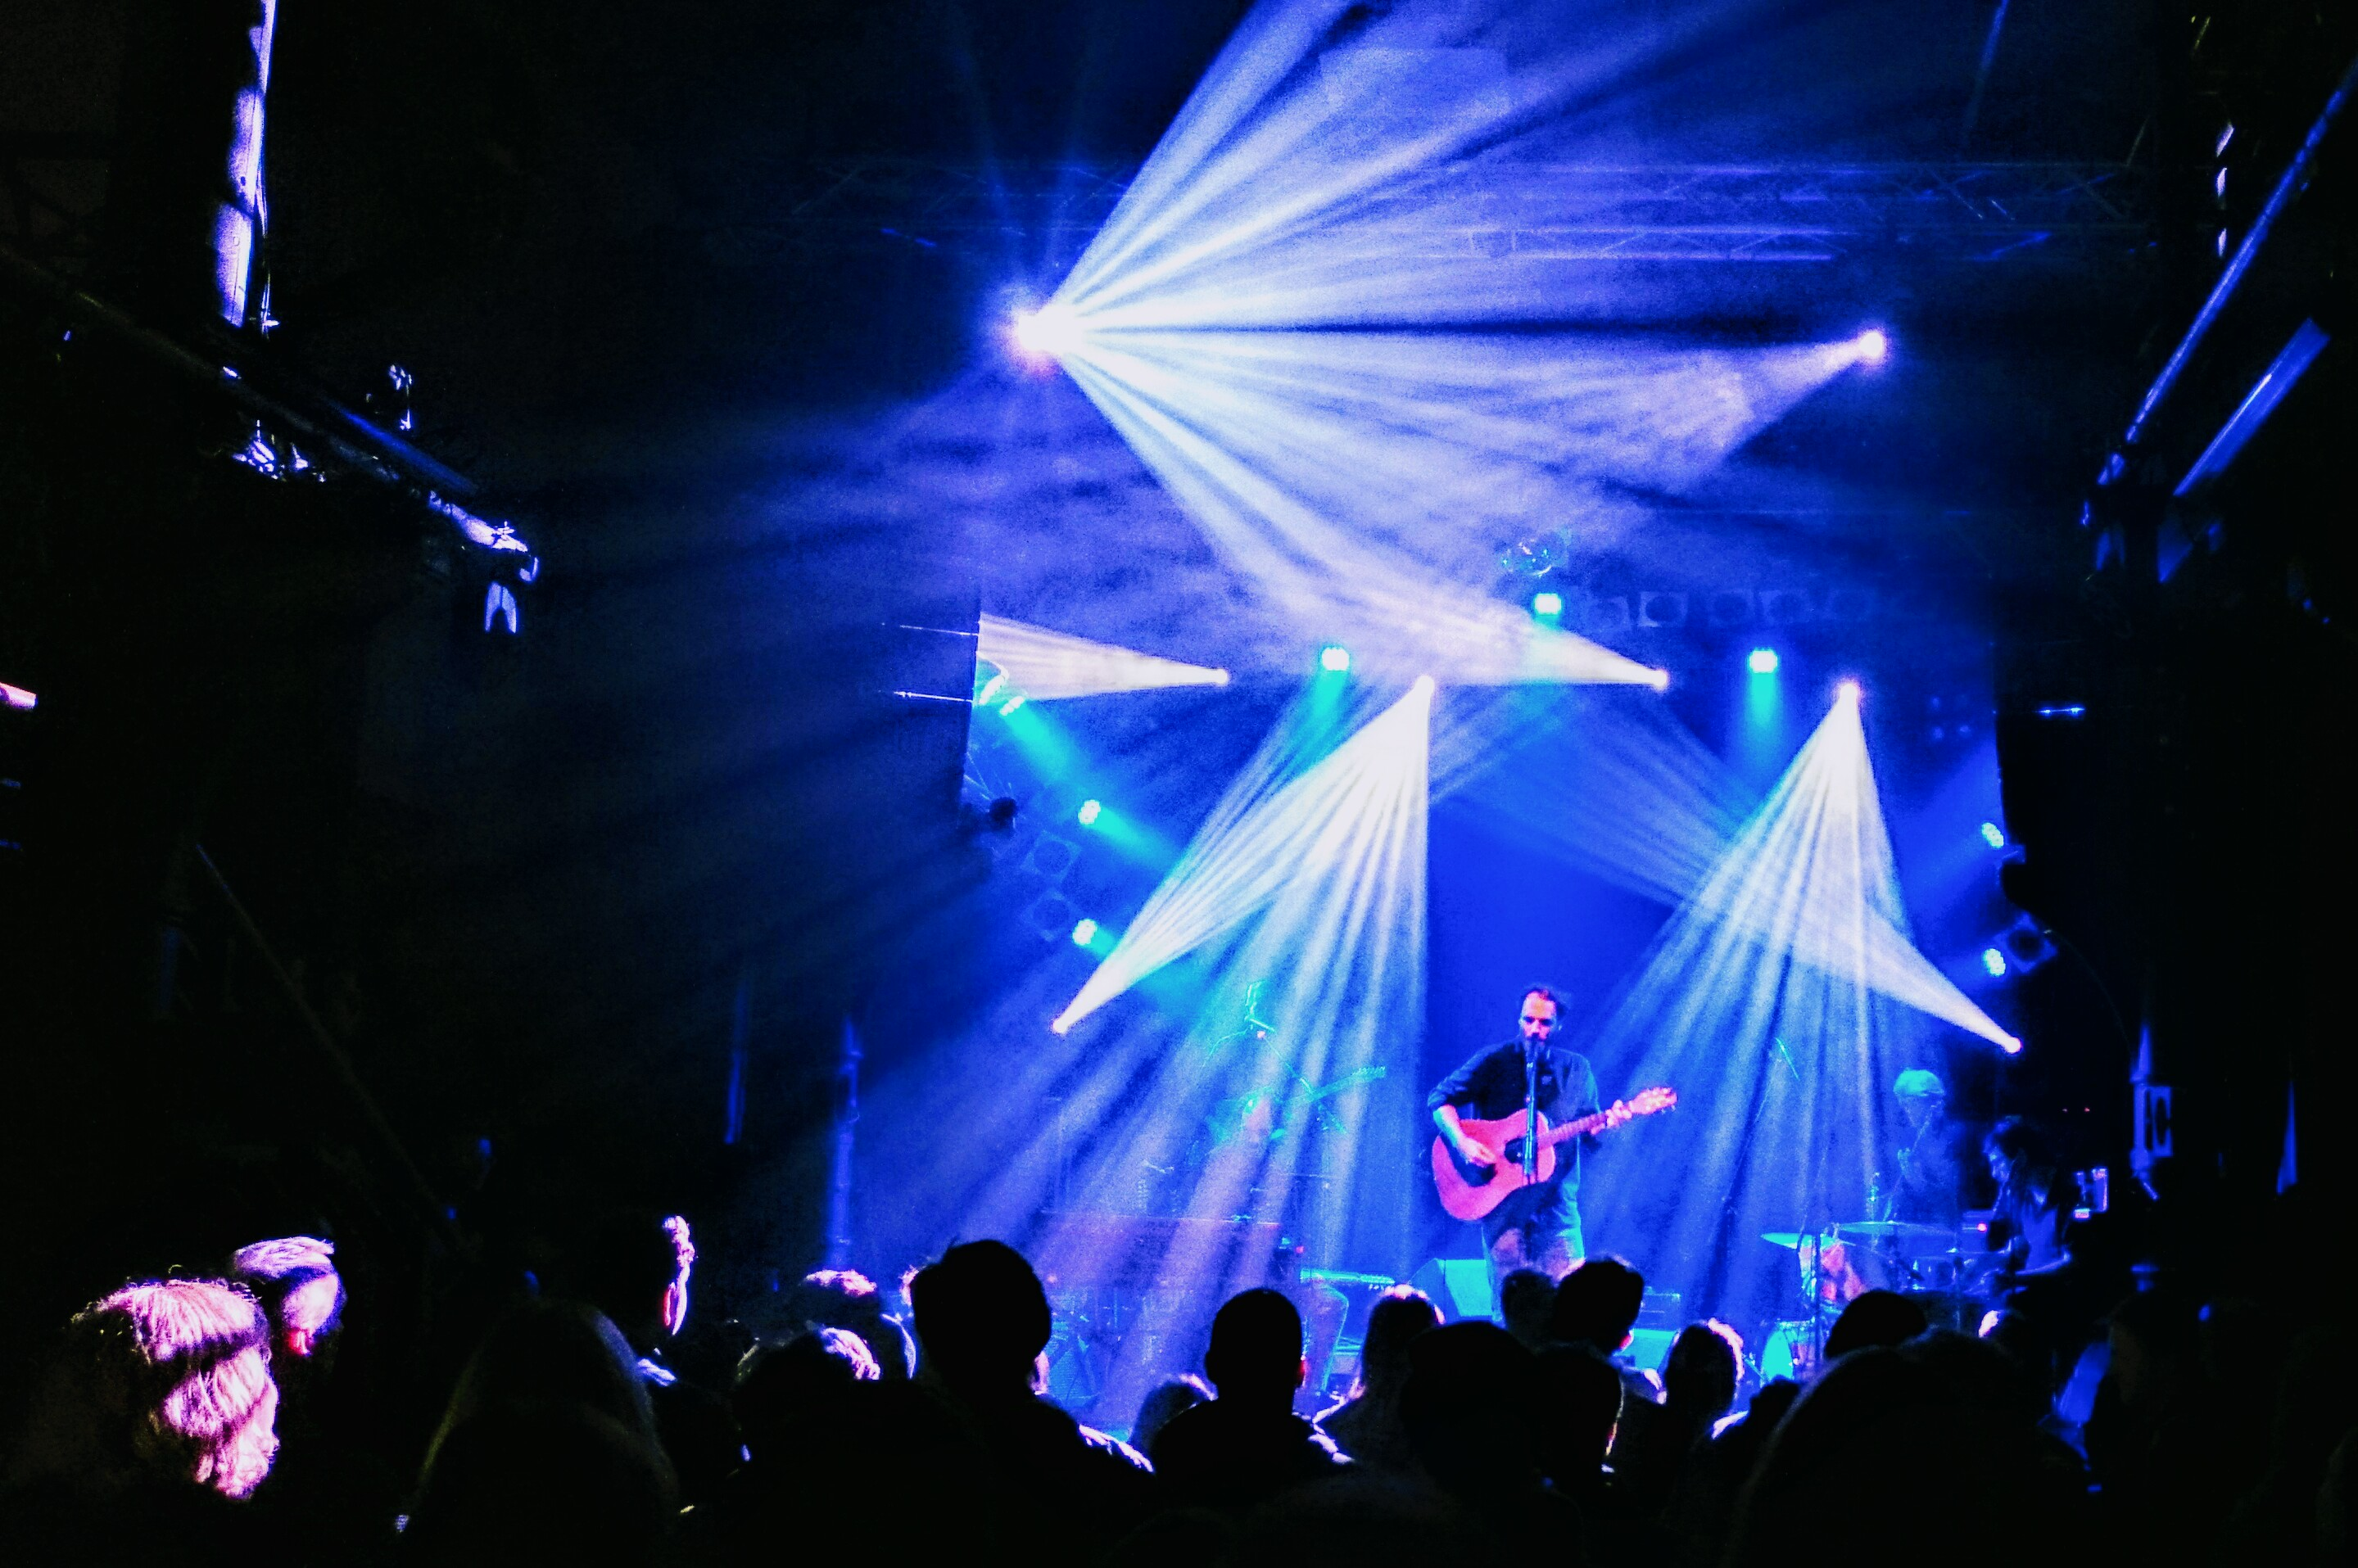 Knust, Club, concert, Staring Girl, Ove, Pascal Finkenauer, Indie, Rock, Americana, Singer-Songwriter, stage, lights, merchandise, Biggy Pop